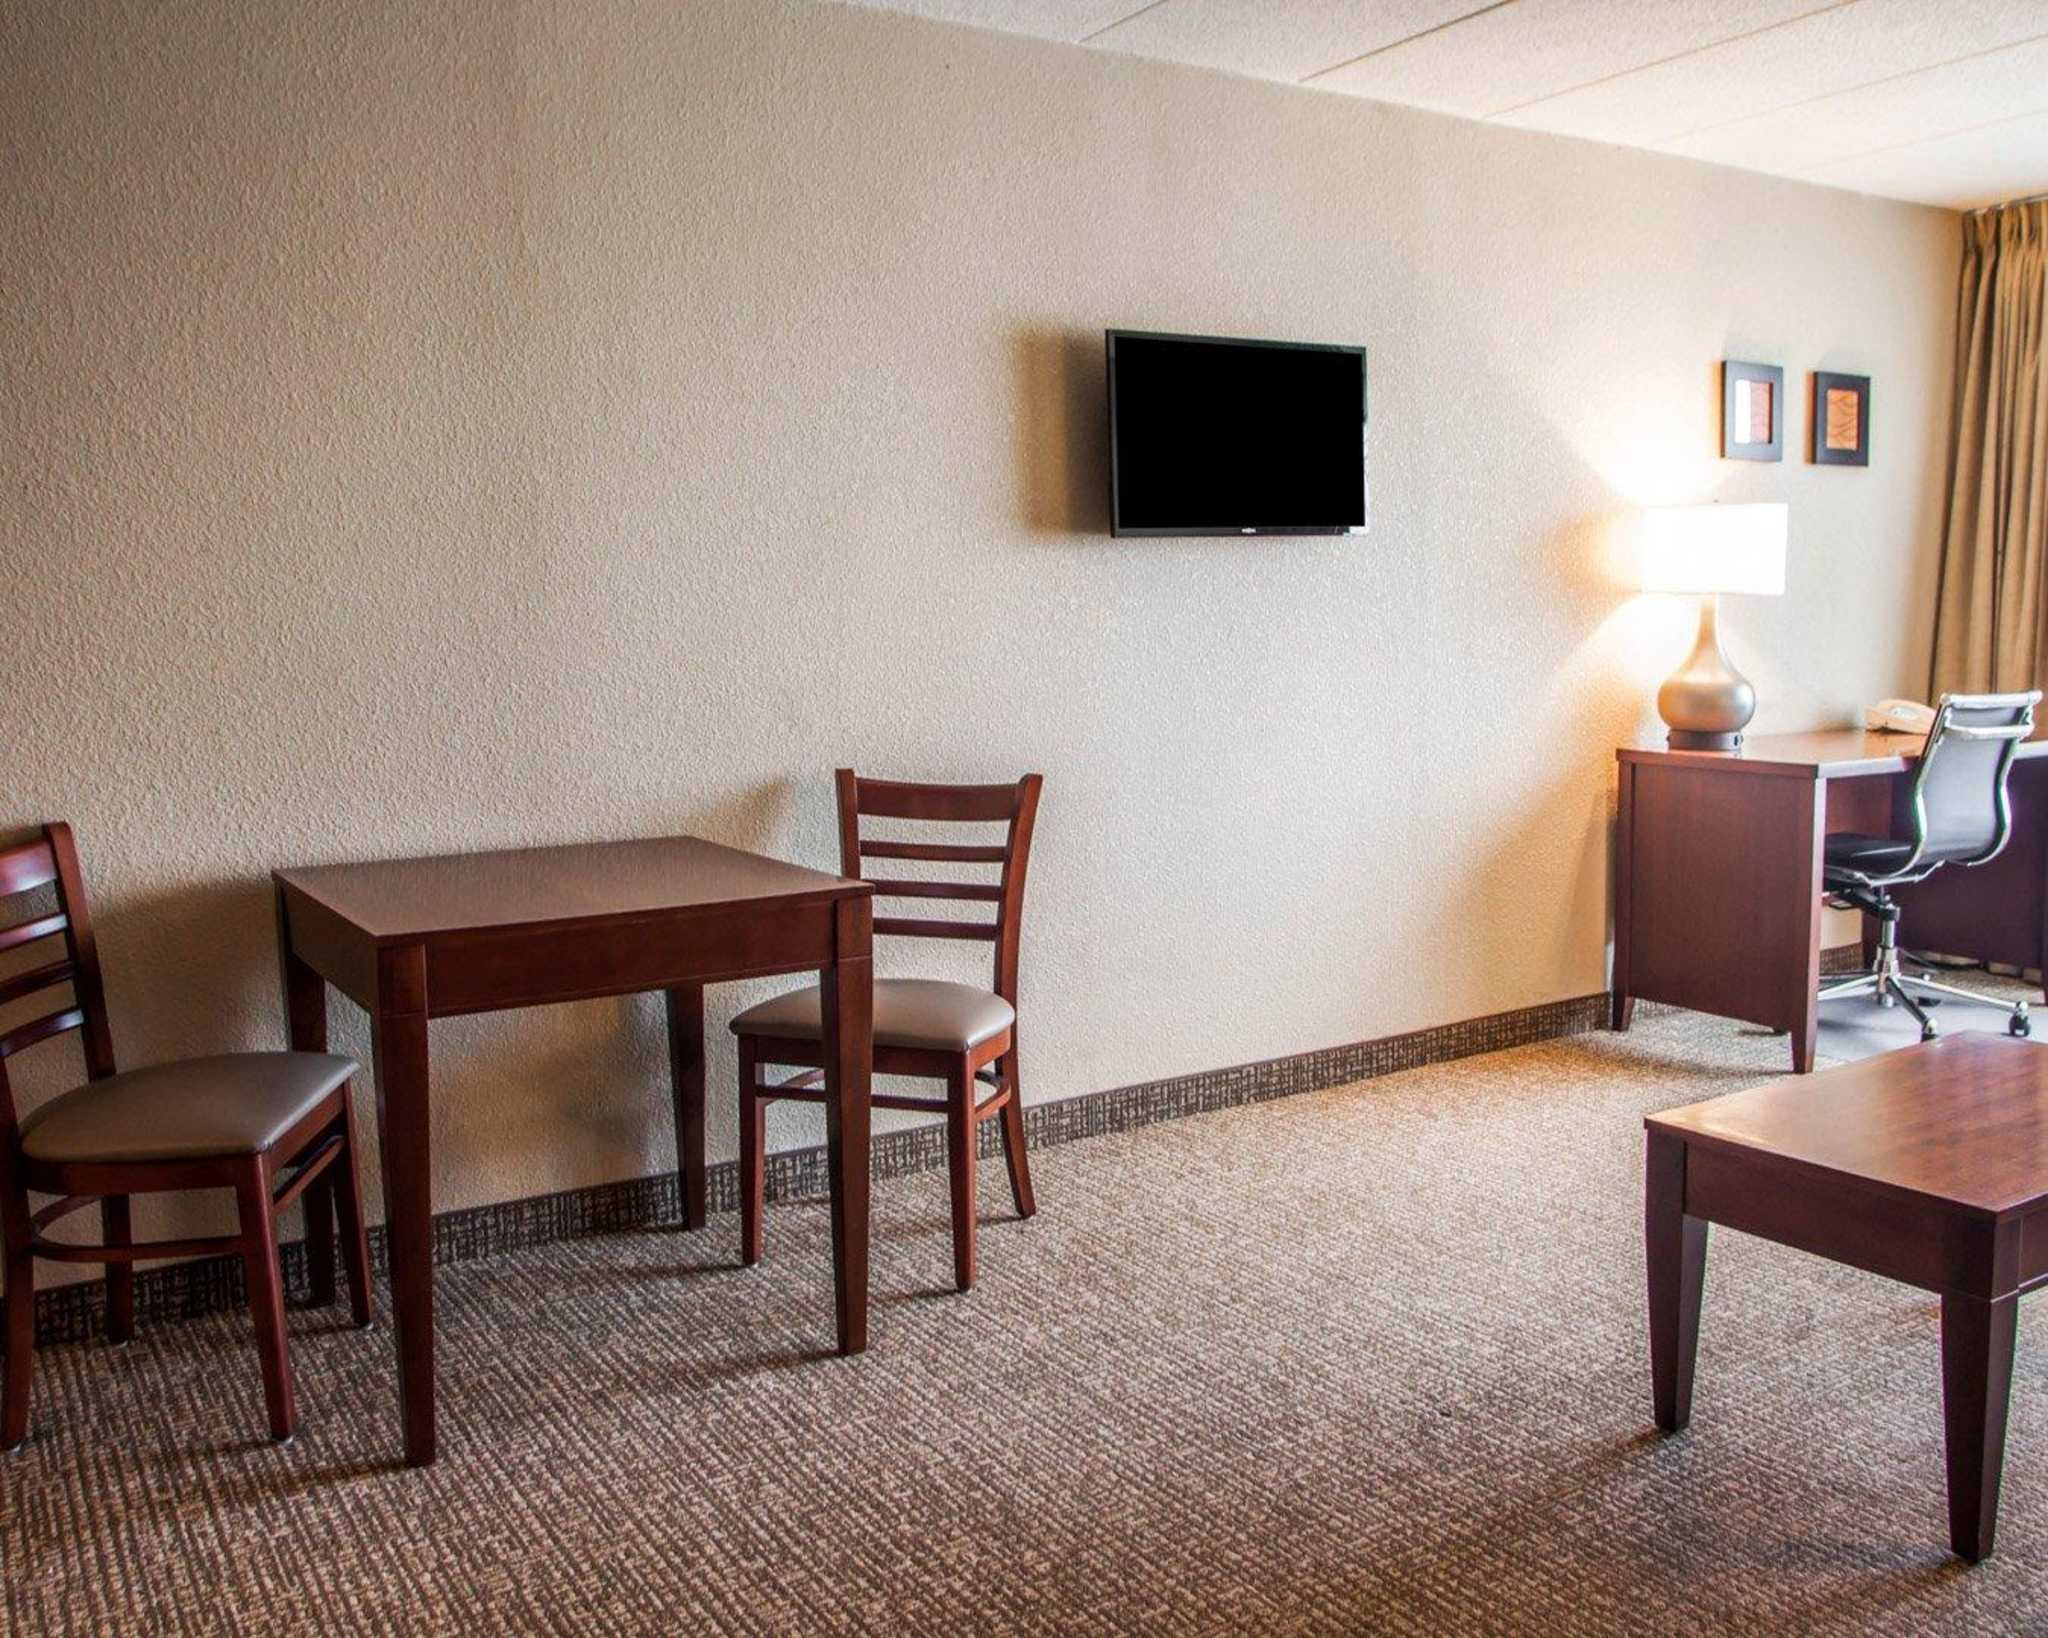 Quality Inn & Suites image 36